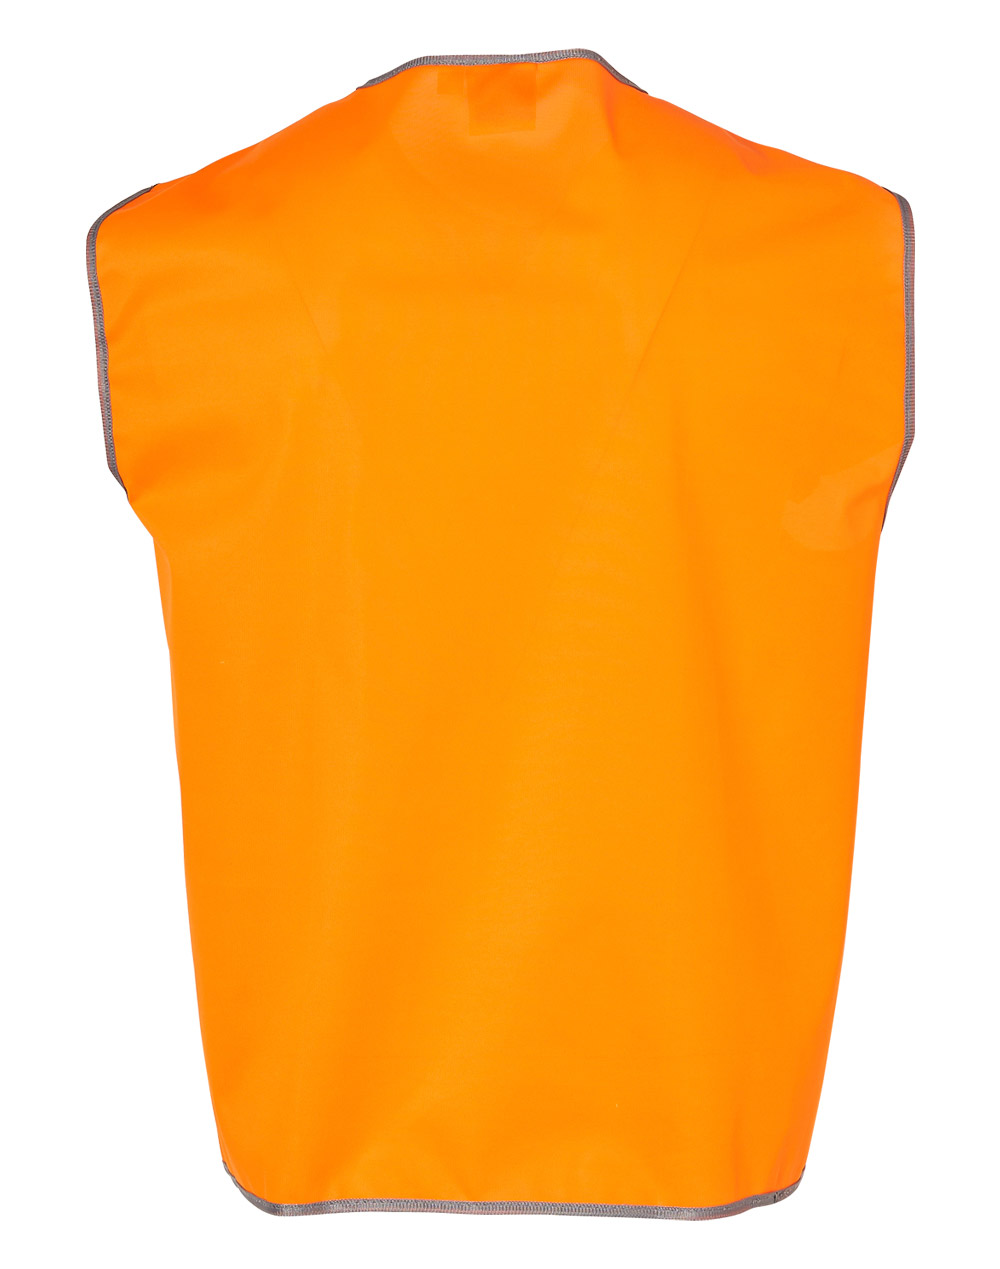 https://s3-ap-southeast-1.amazonaws.com/ws-imgs/WORKWEAR/SW02_Orange_Back.jpg